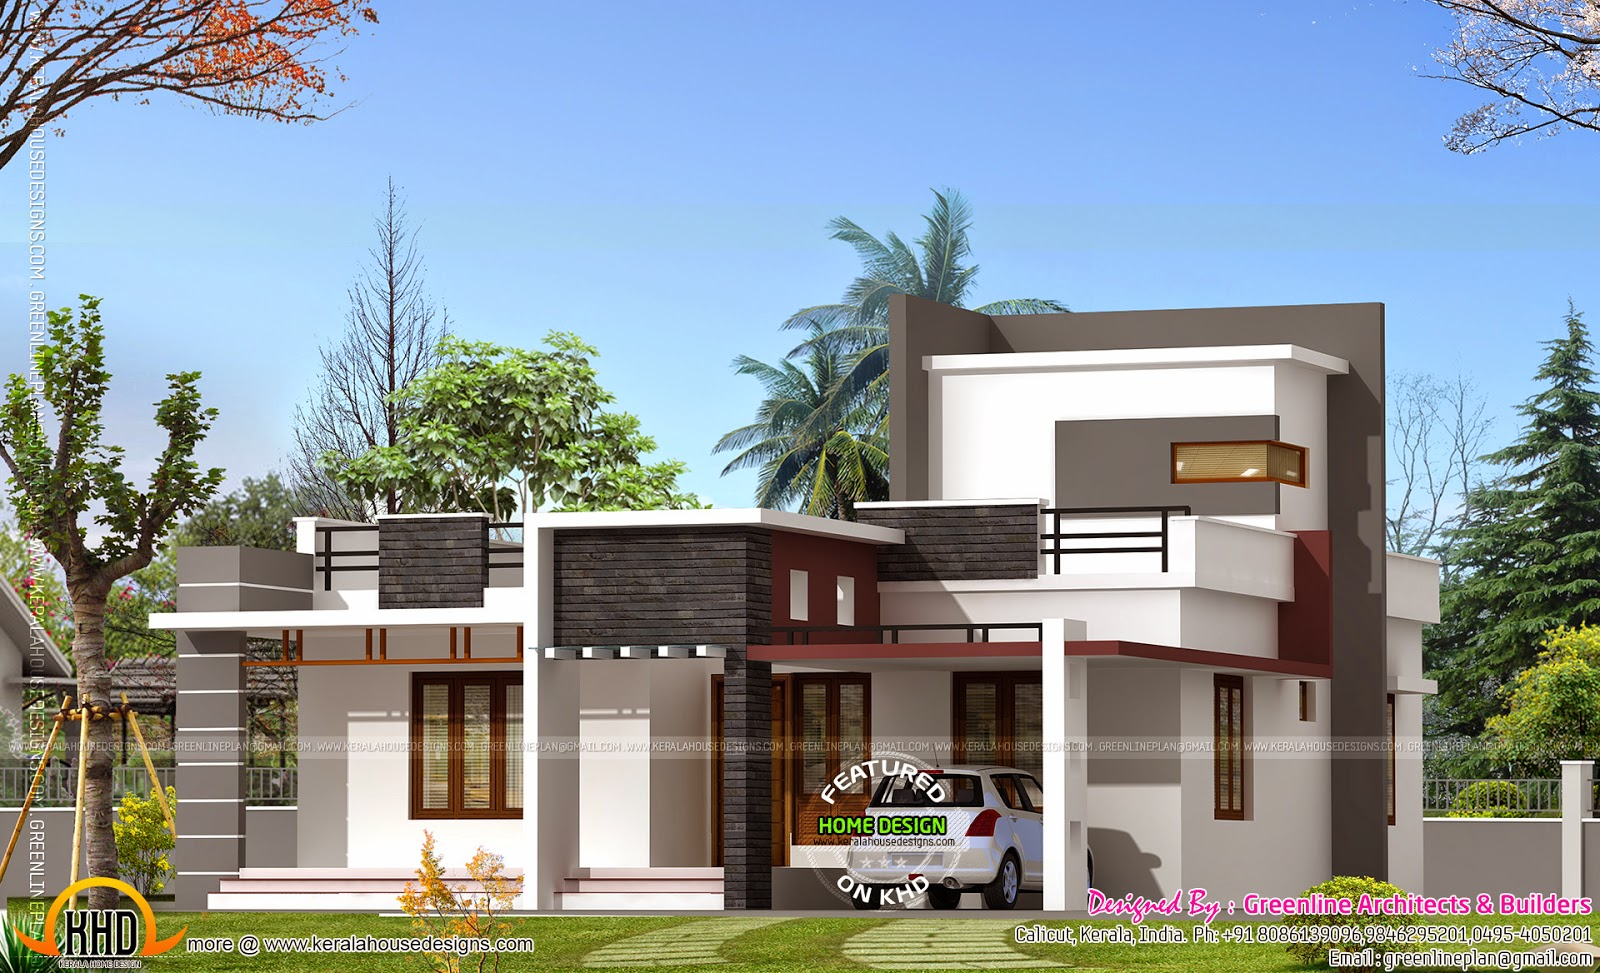 1000 square feet house kerala home design and floor plans for Modular homes under 1000 square feet